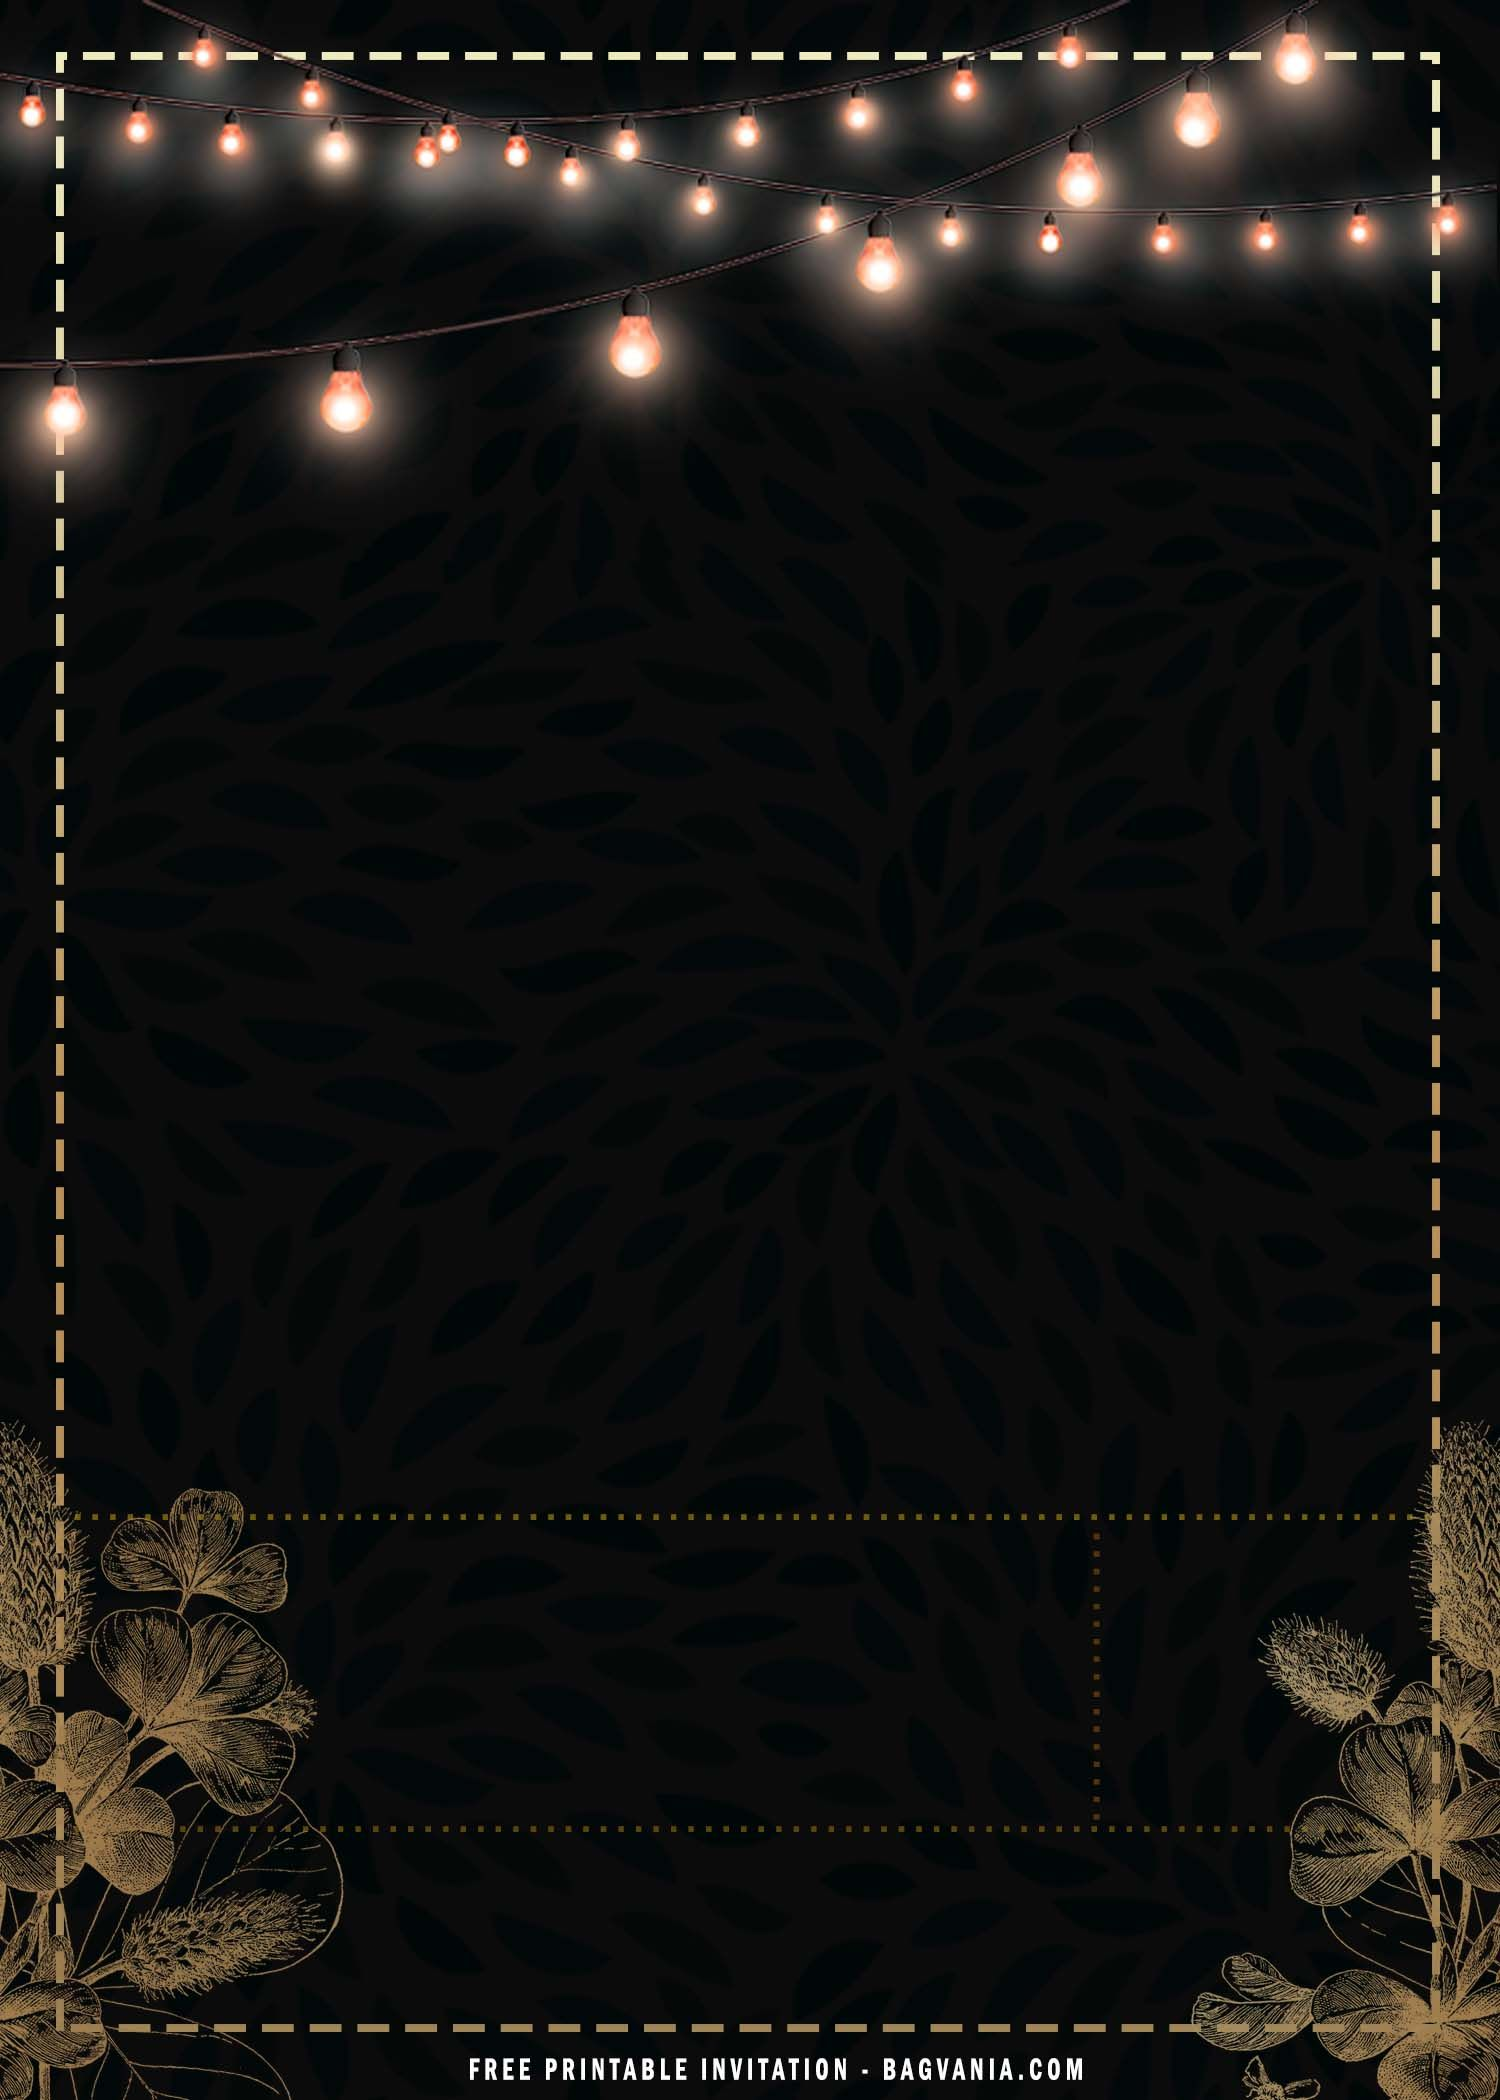 Free Printable Black And Gold Sparkle Invitation Templates Black And Gold Invitations Gold And Black Background Black And Gold Theme